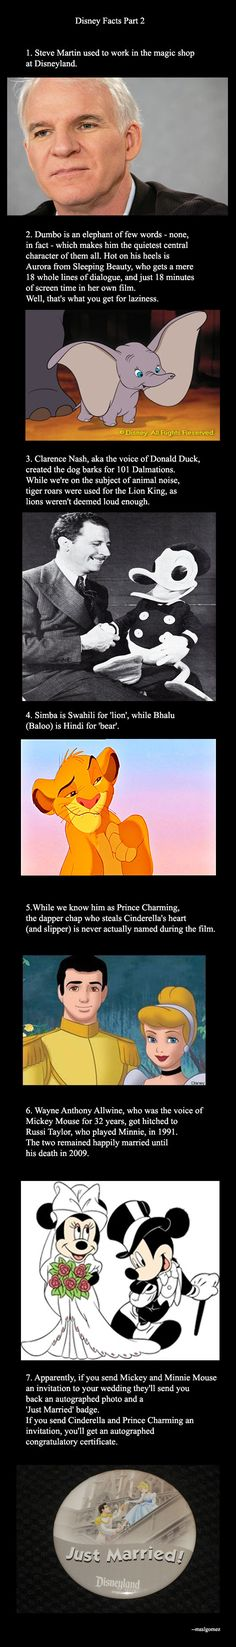 Disney Facts Part 2